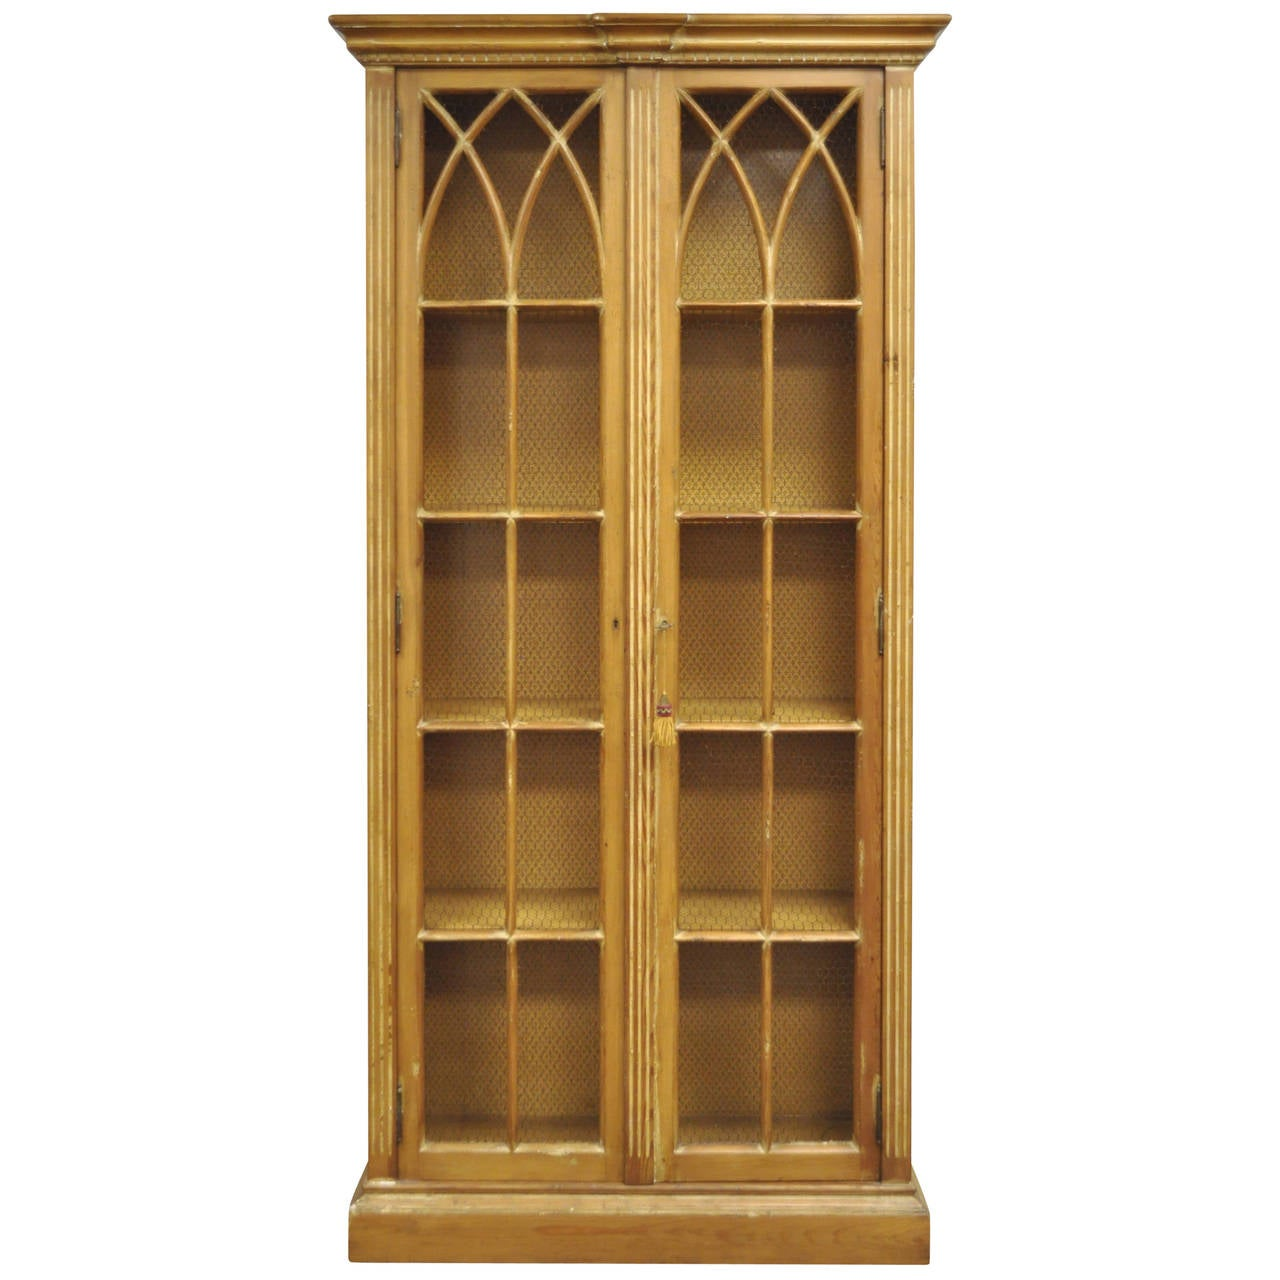 Antiqued And Distress Finished Italian Bookcase In The